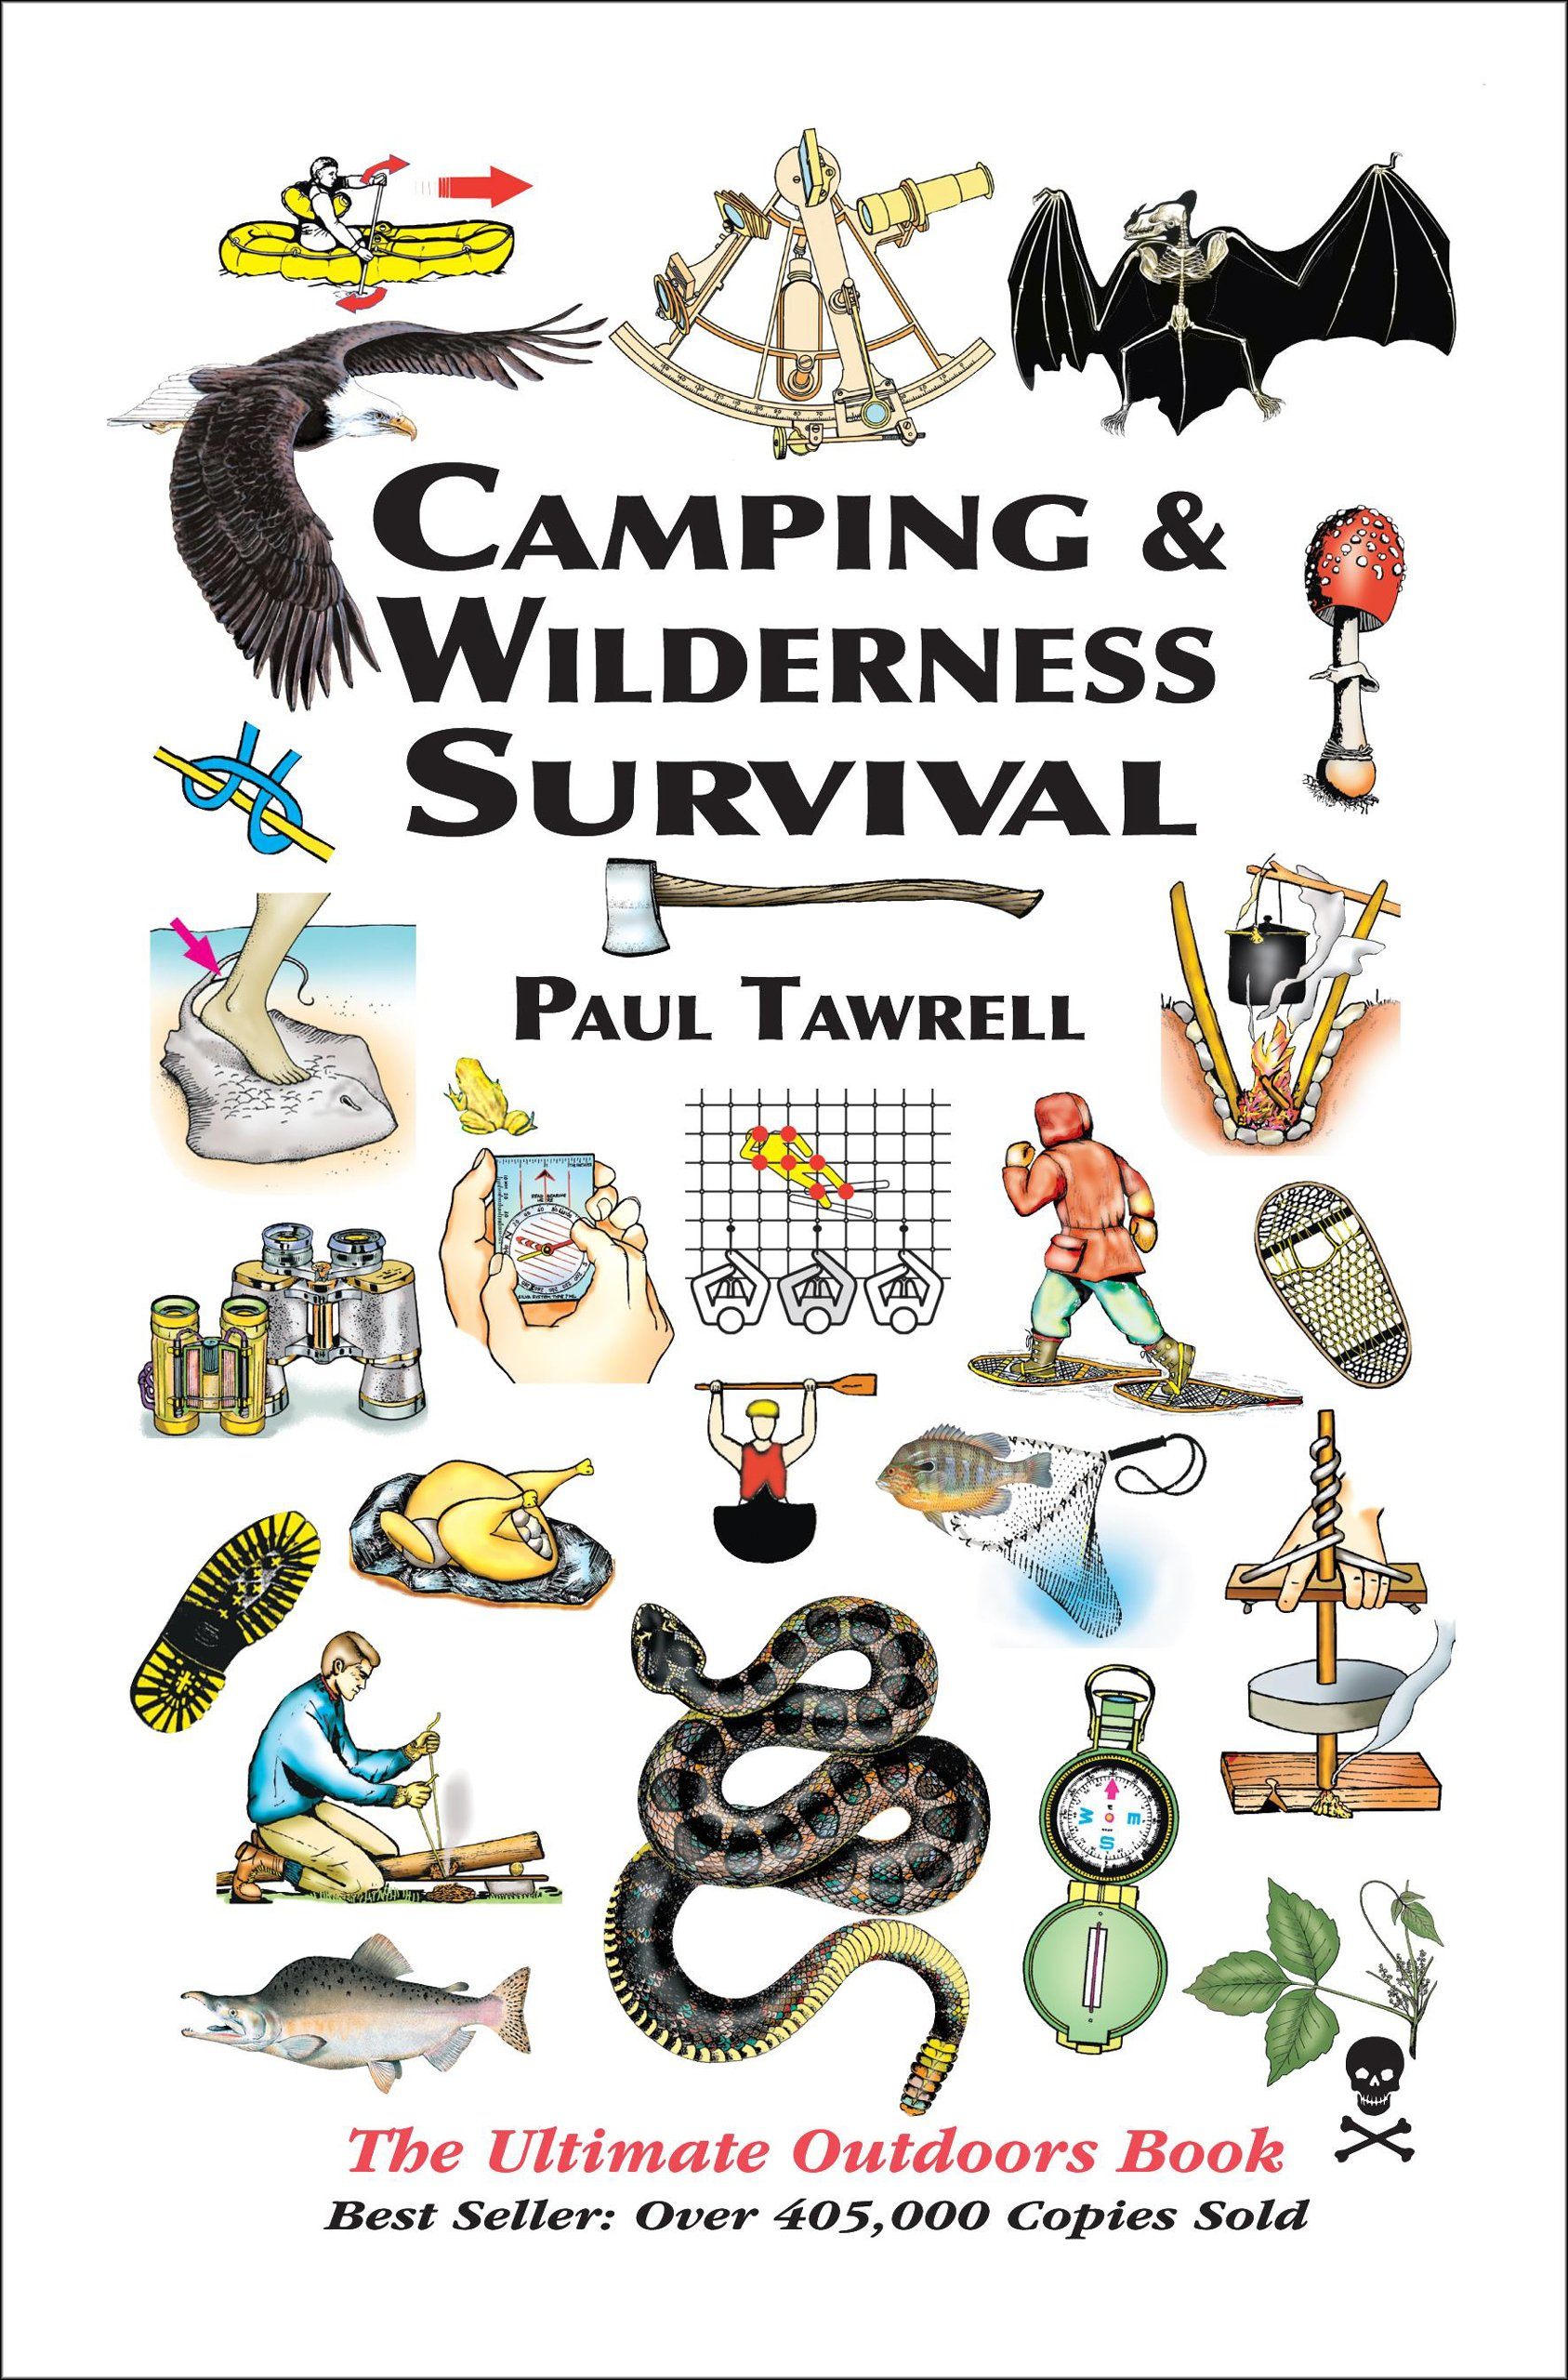 Camping & Wilderness Survival, 2nd: The Ultimate Outdoors Book by Tawrell